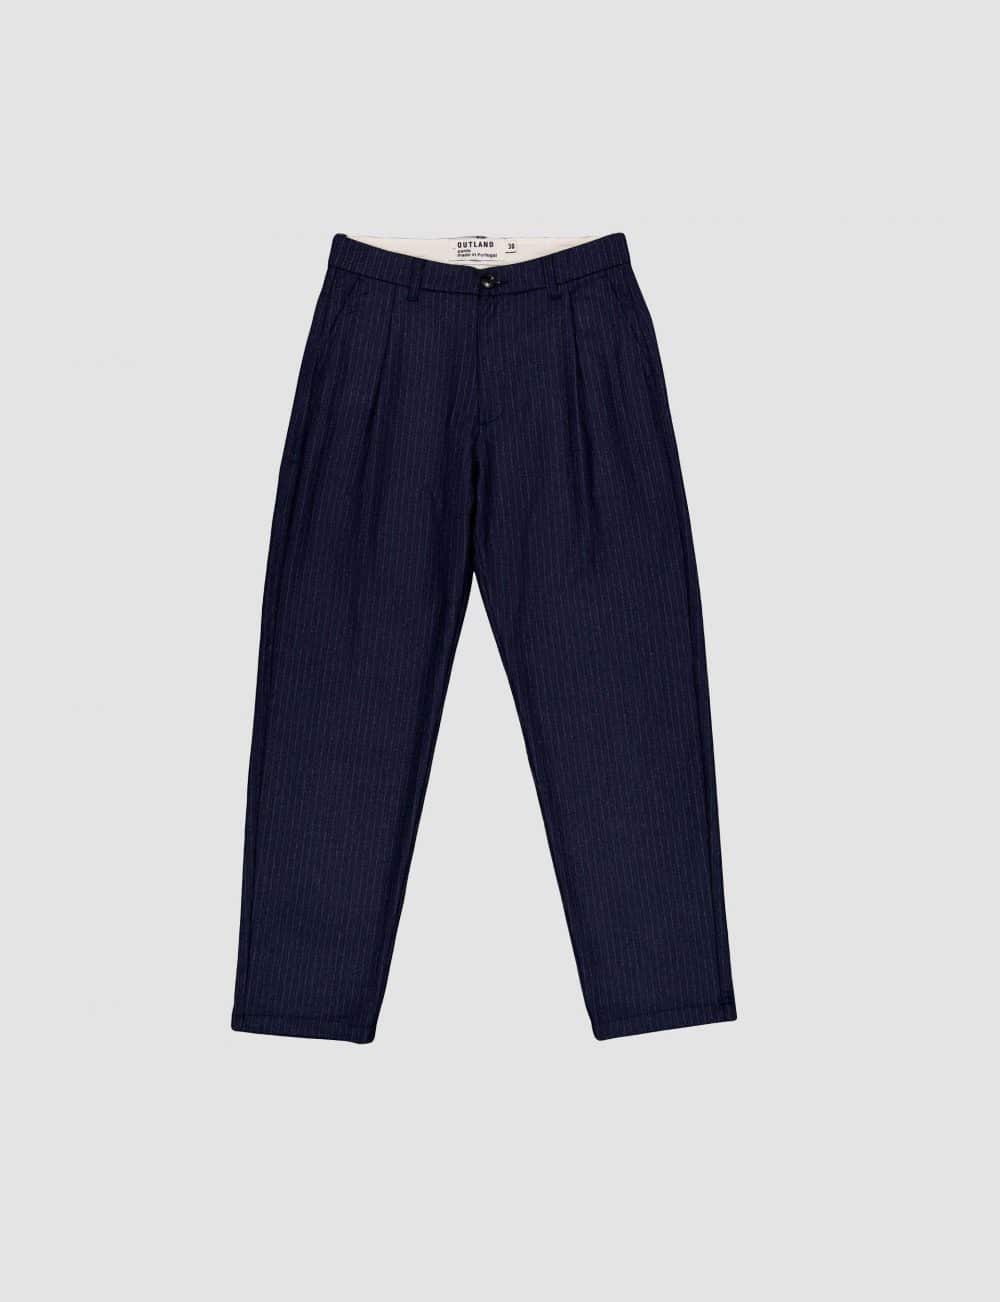 Outland - Wool pants - Navy